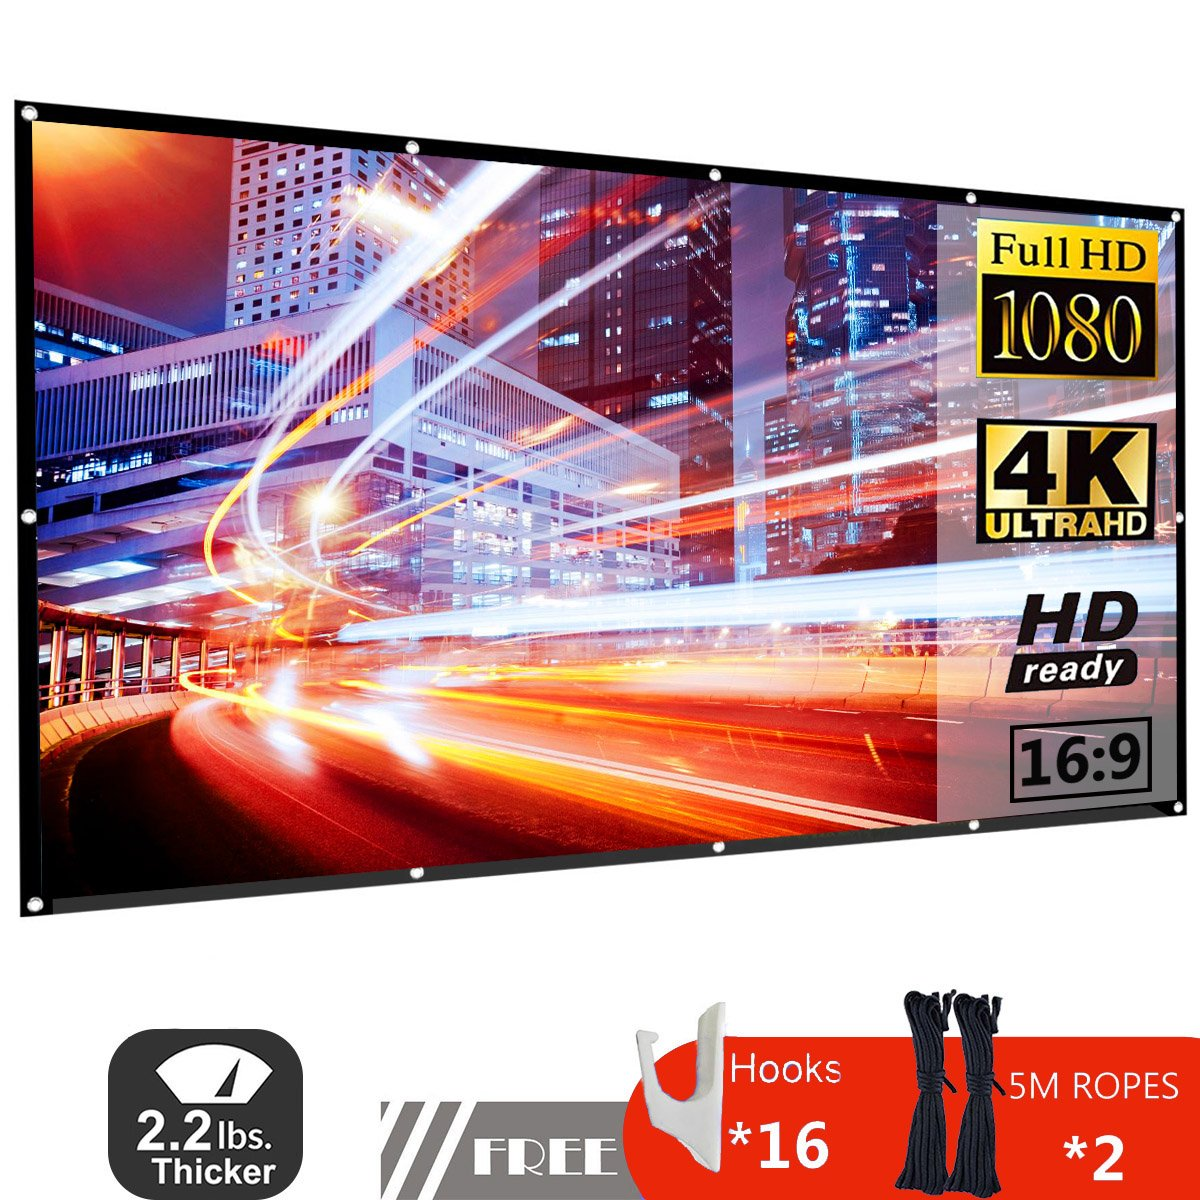 120 Inch Projector Screen 16:9 HD Foldable Portable Anti-Crease Indoor Outdoor Movie Screen Support Double Slides Projection for Home Theater Gaming Office by JDDZ